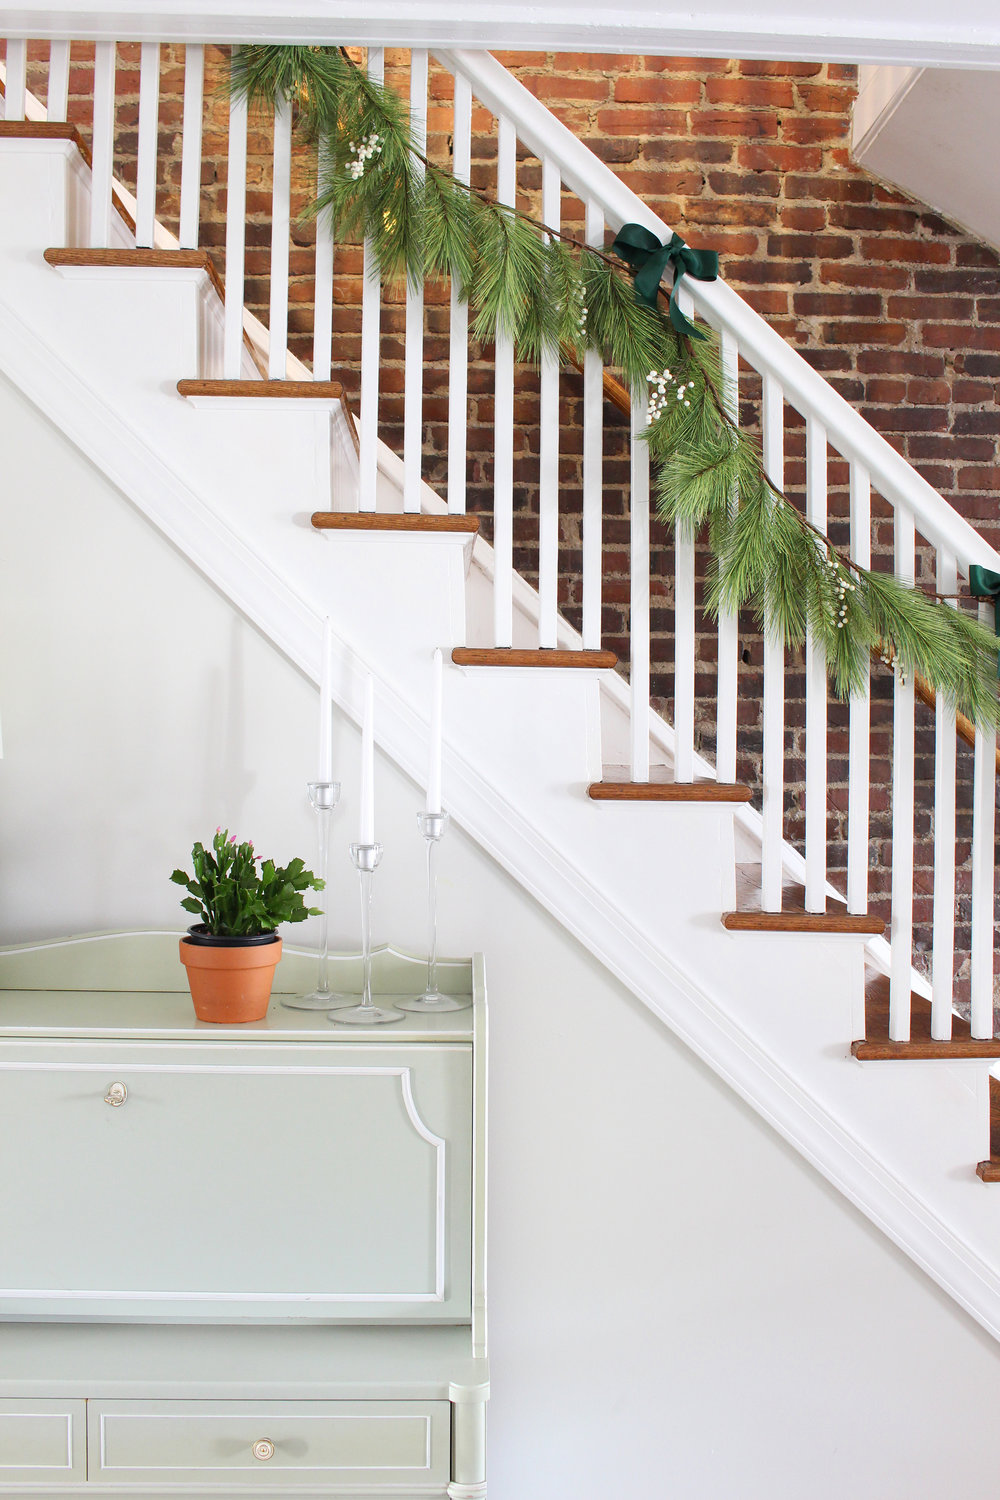 Adding greenery to your home in the form of a pine, cedar, or mixed garland is one of the most impactful ways to decorate for the holidays, and it's also one of the simplest and quickest! // hang garland, how to hang greenery, Christmas garland, artificial garland on railing, hang garland on stairs